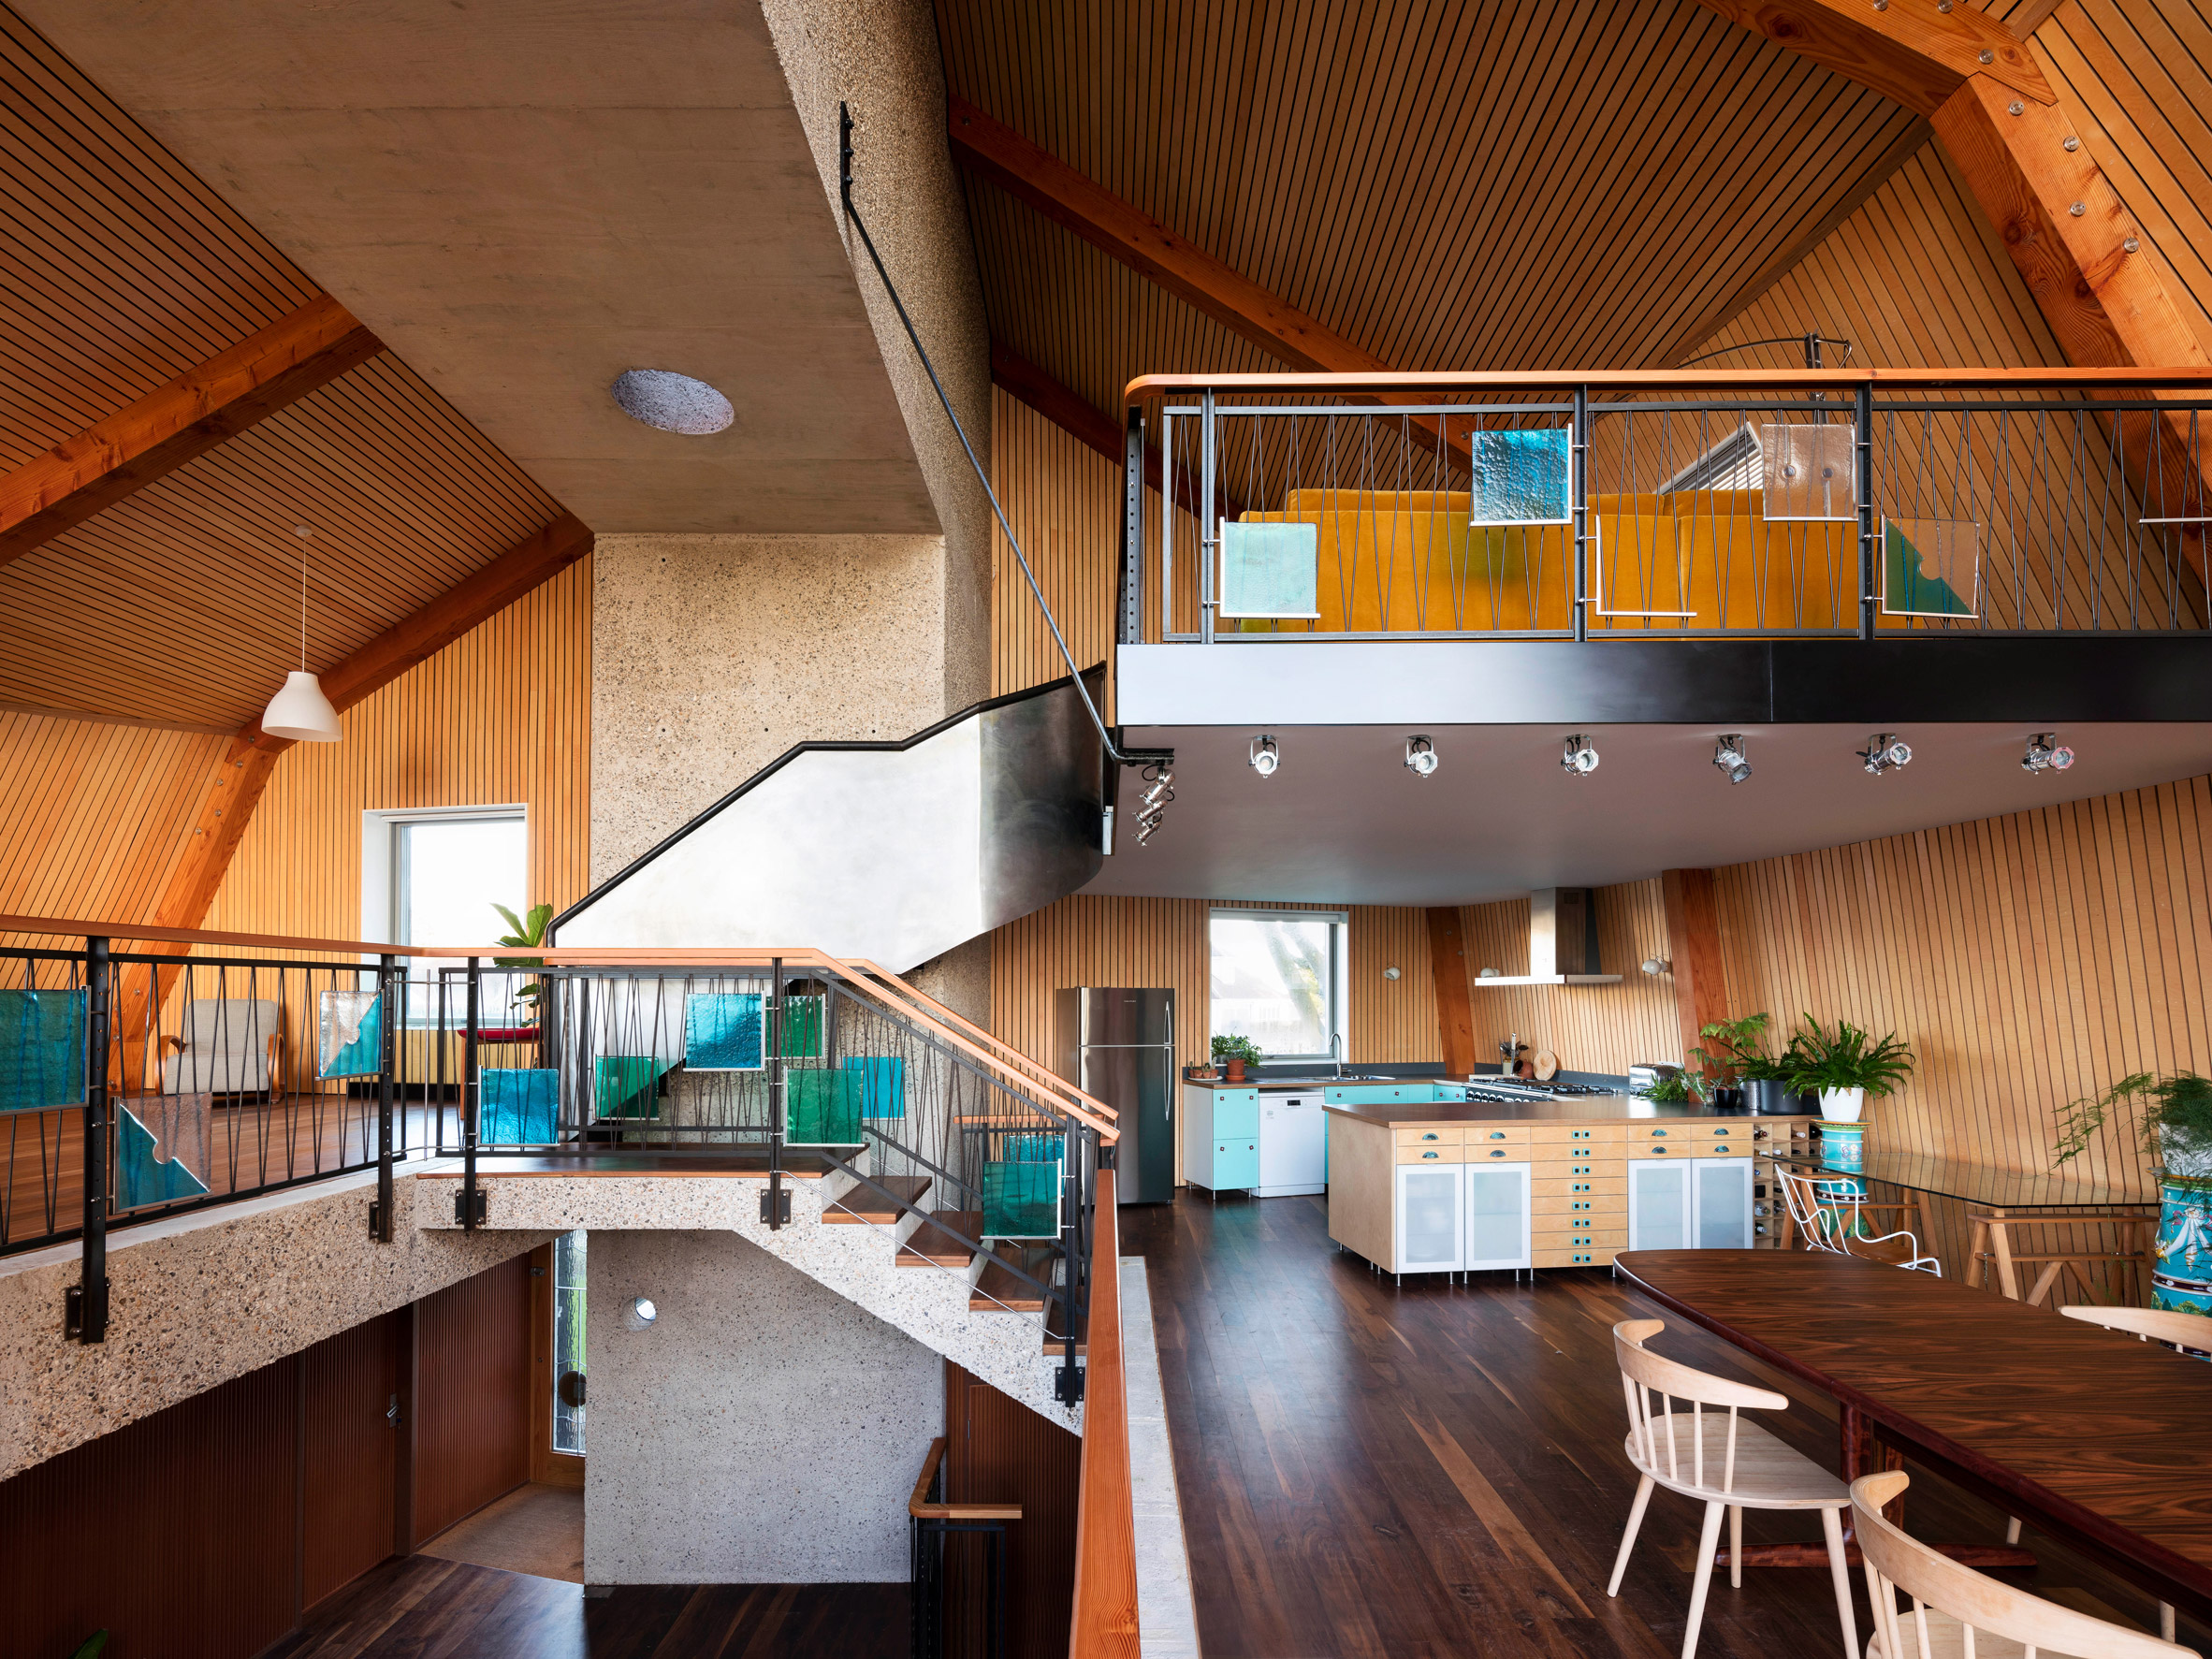 The Houseboat by Mole Architects